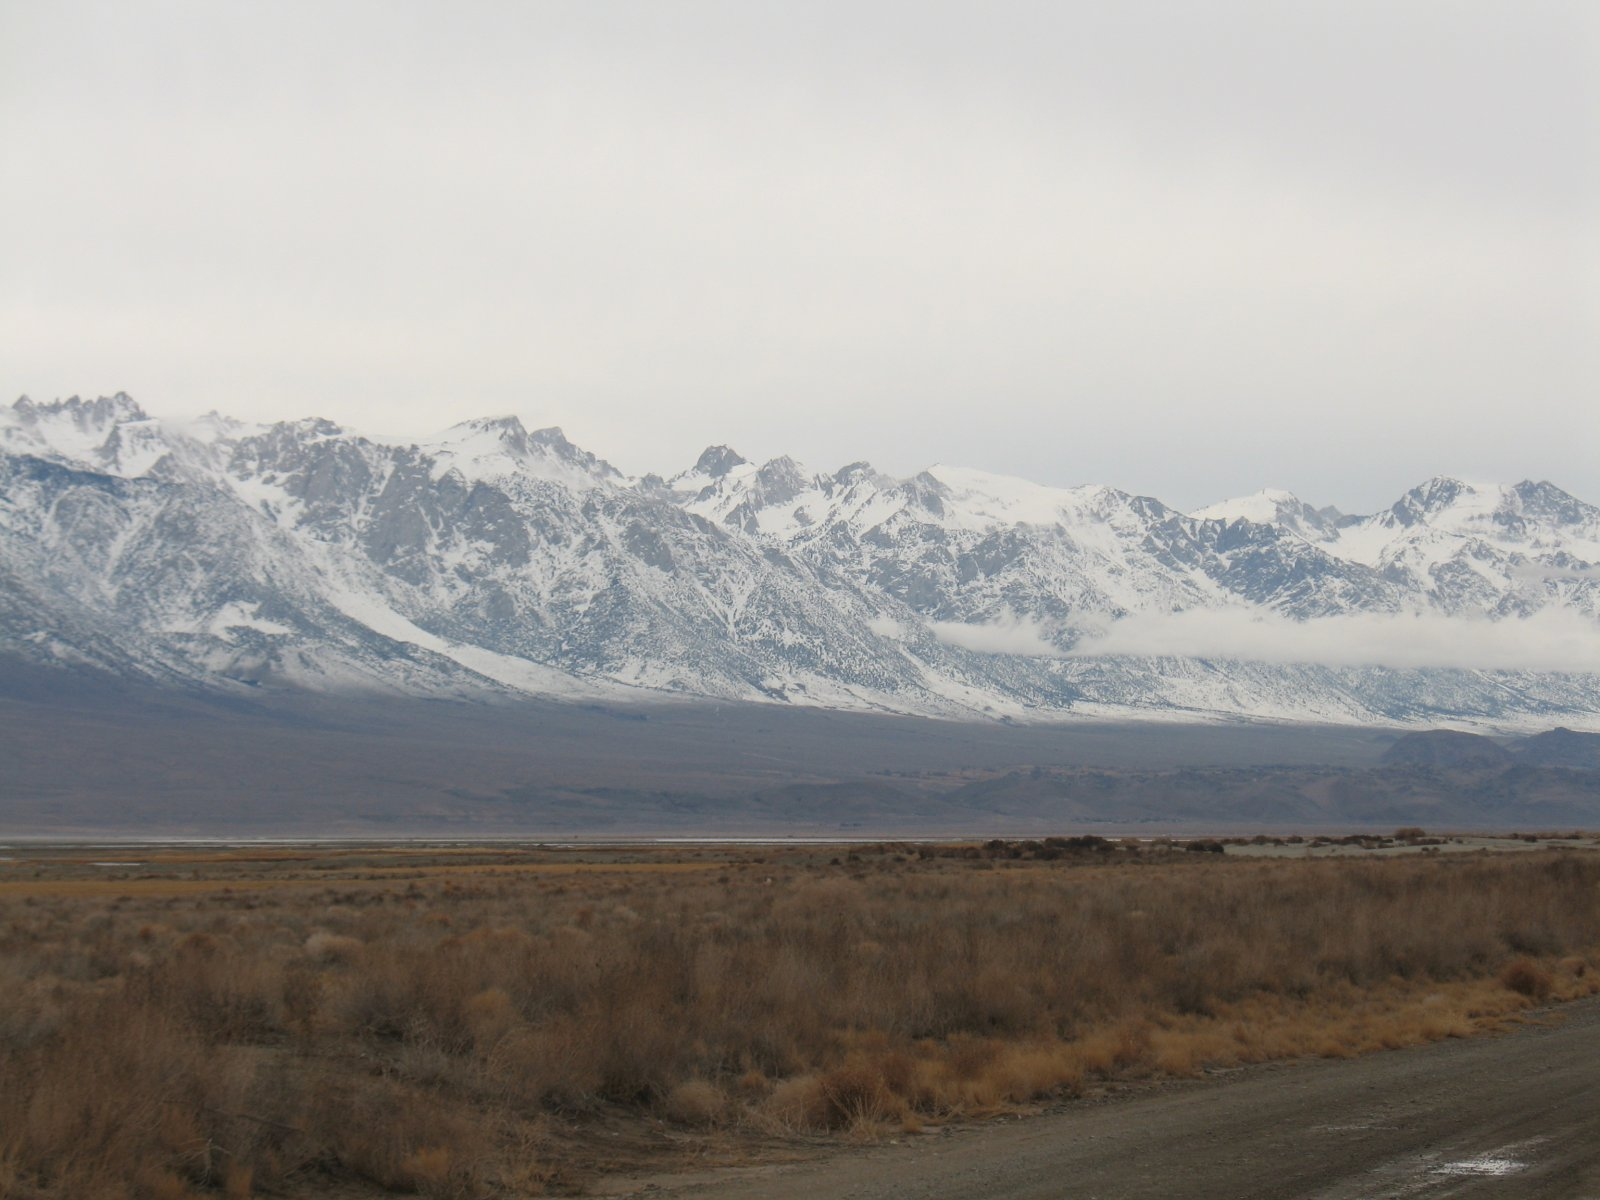 Click image for larger version  Name:Lone Pine Christmas 2010 076.jpg Views:166 Size:203.3 KB ID:206763